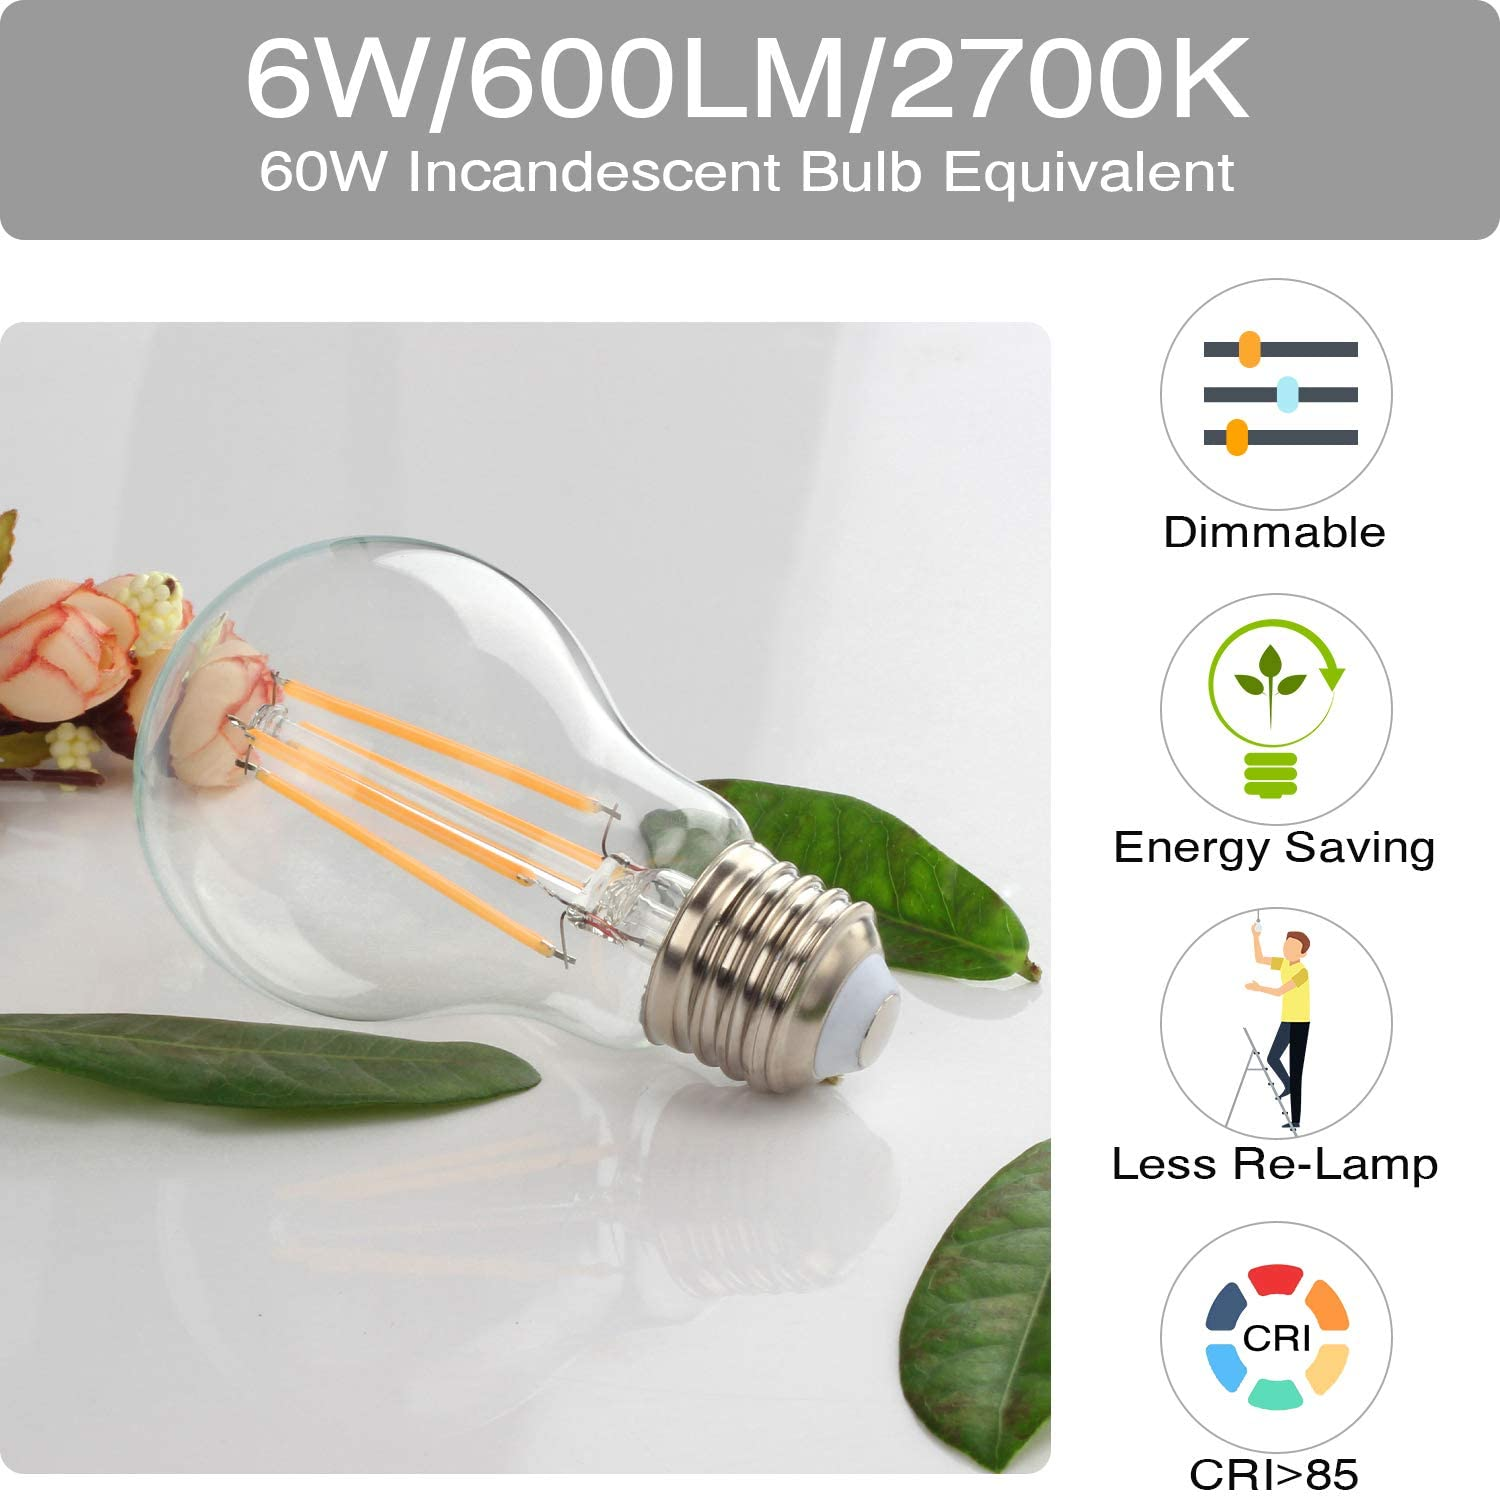 Boncoo Vintage LED Edison Bulb Dimmable 6W A19 LED Light Bulbs 2700K Soft White 600LM Led Filament Bulb 60W Incandescent Equivalent E26 Medium Base Decorative Clear Glass for Home Cafe Office 6 Pack